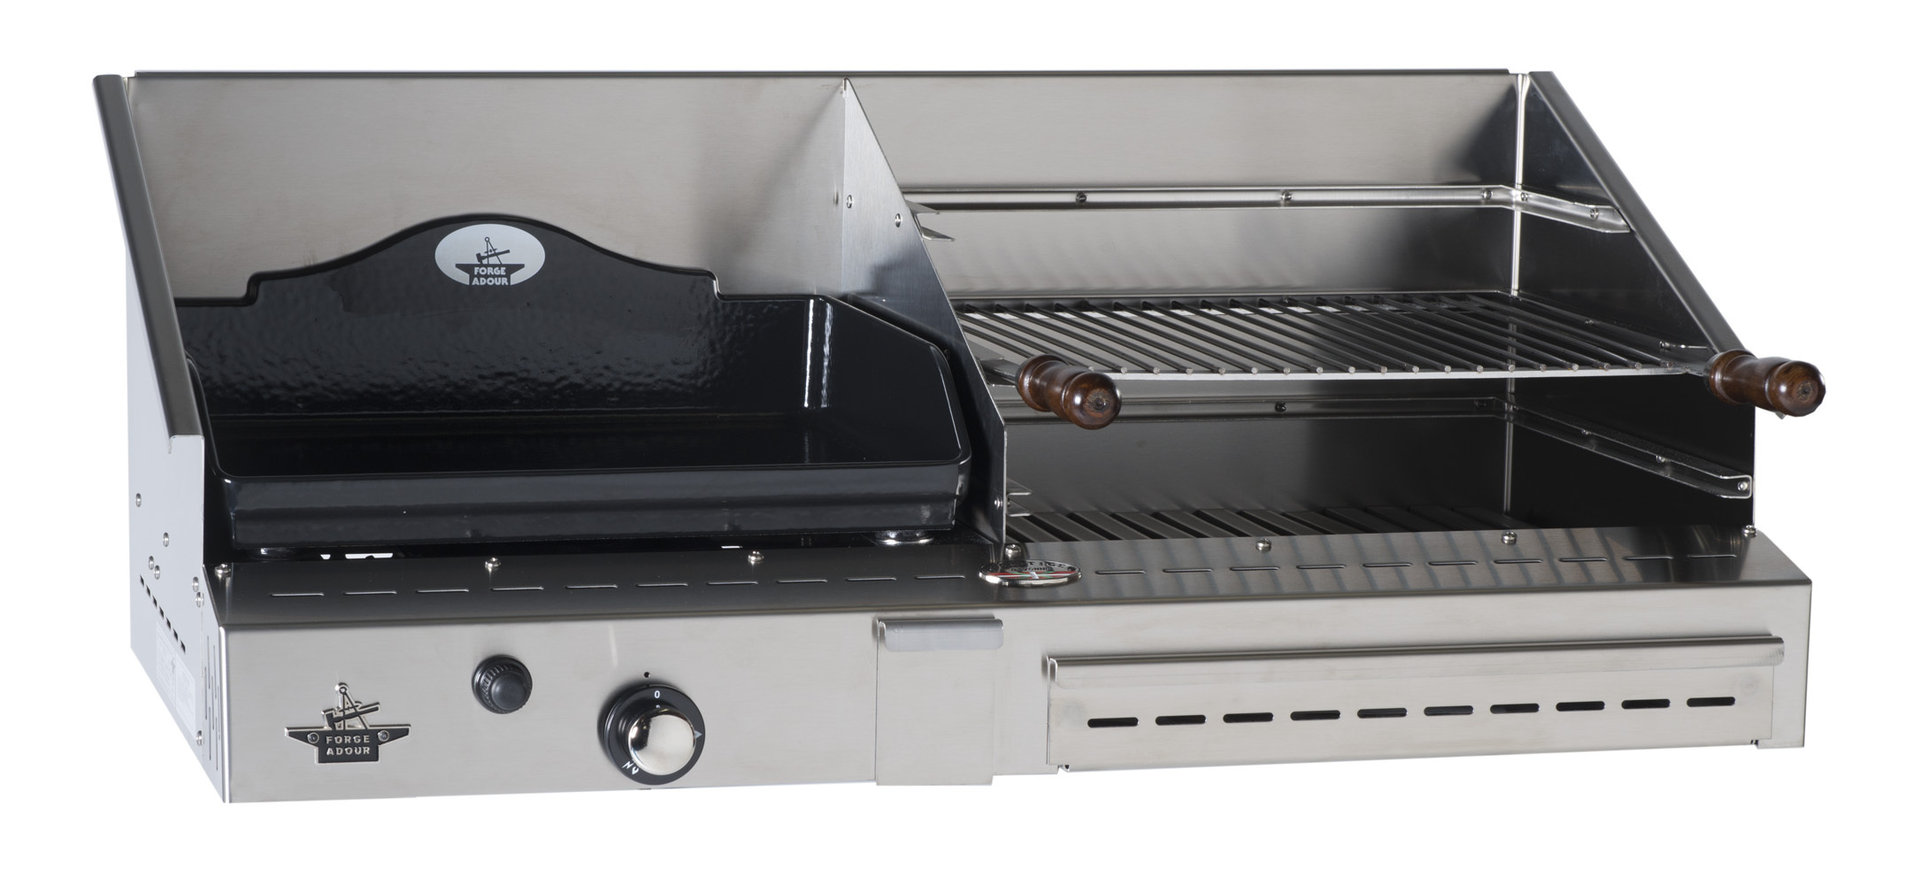 Duo plancha de gas y barbacoa 500 inox the barbecue store - Barbacoa de gas ...